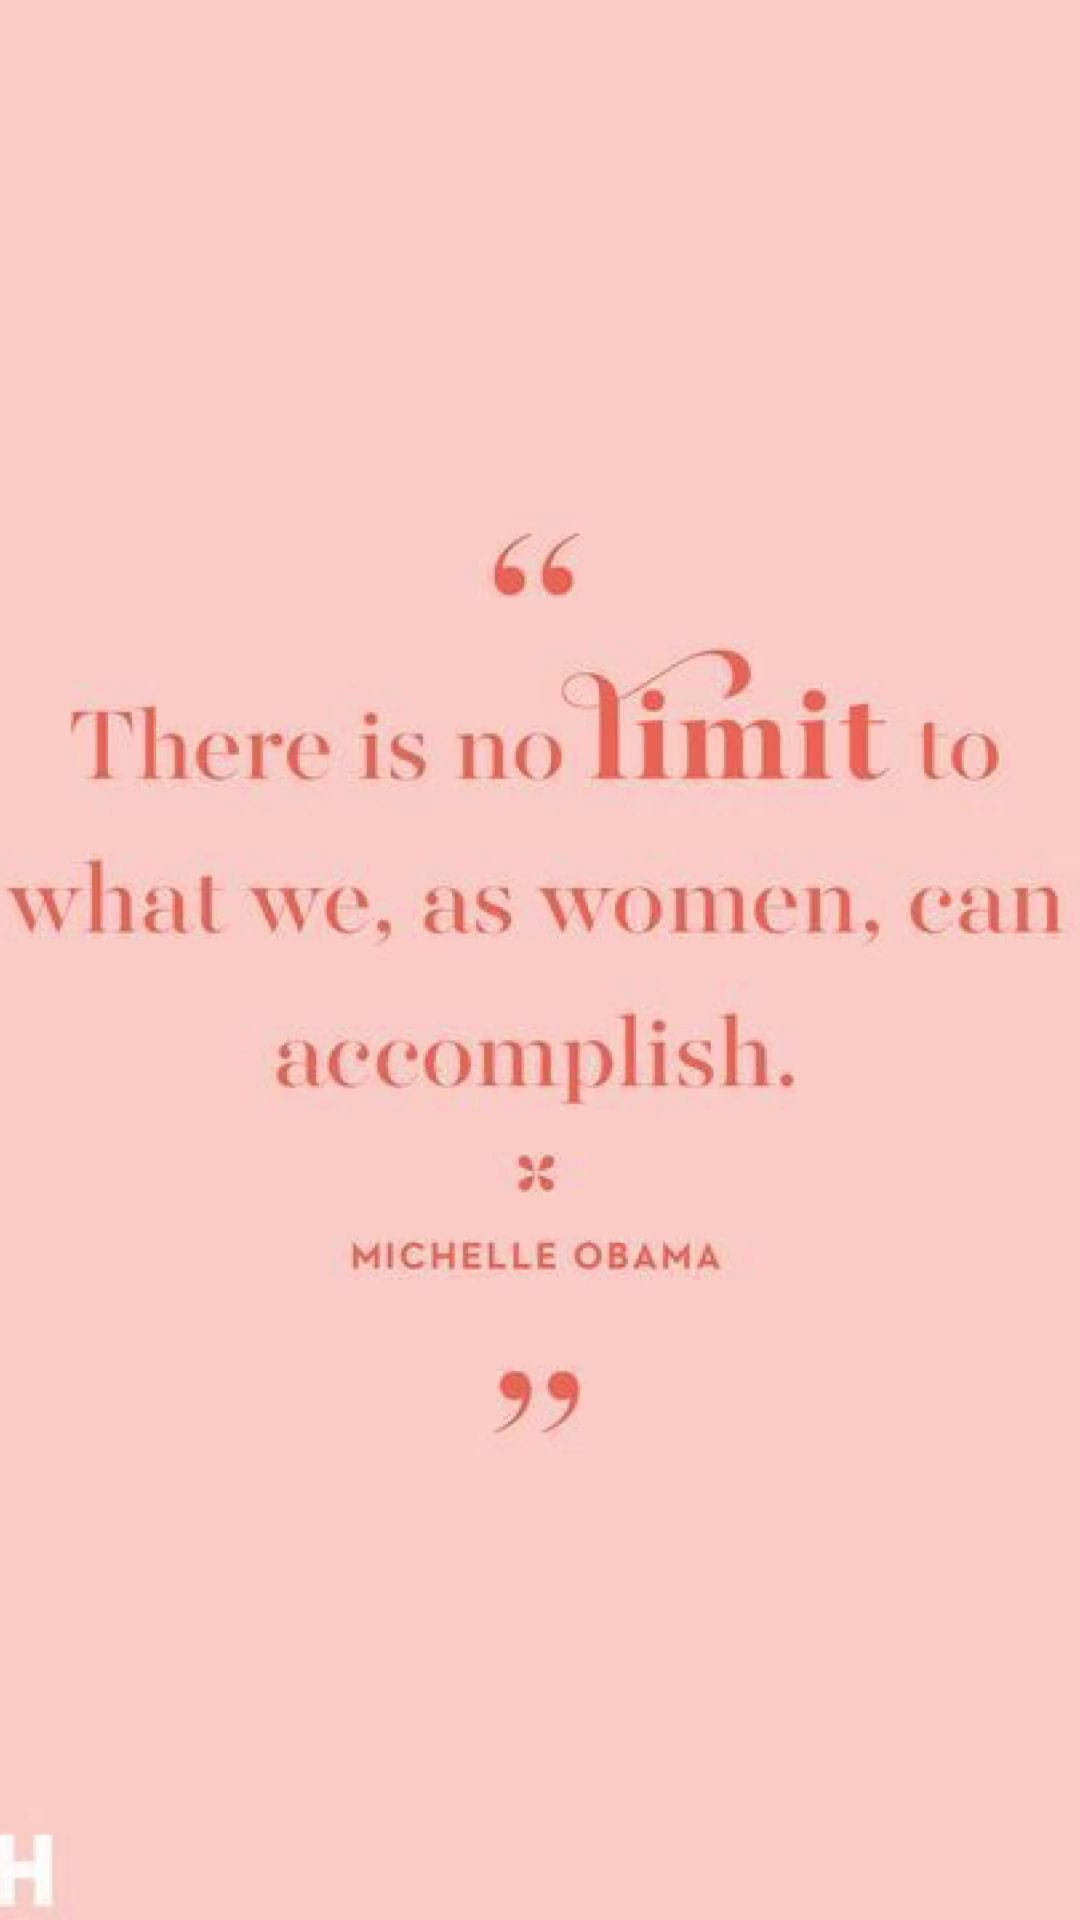 Ways to celebrate international women's day with quotes and art